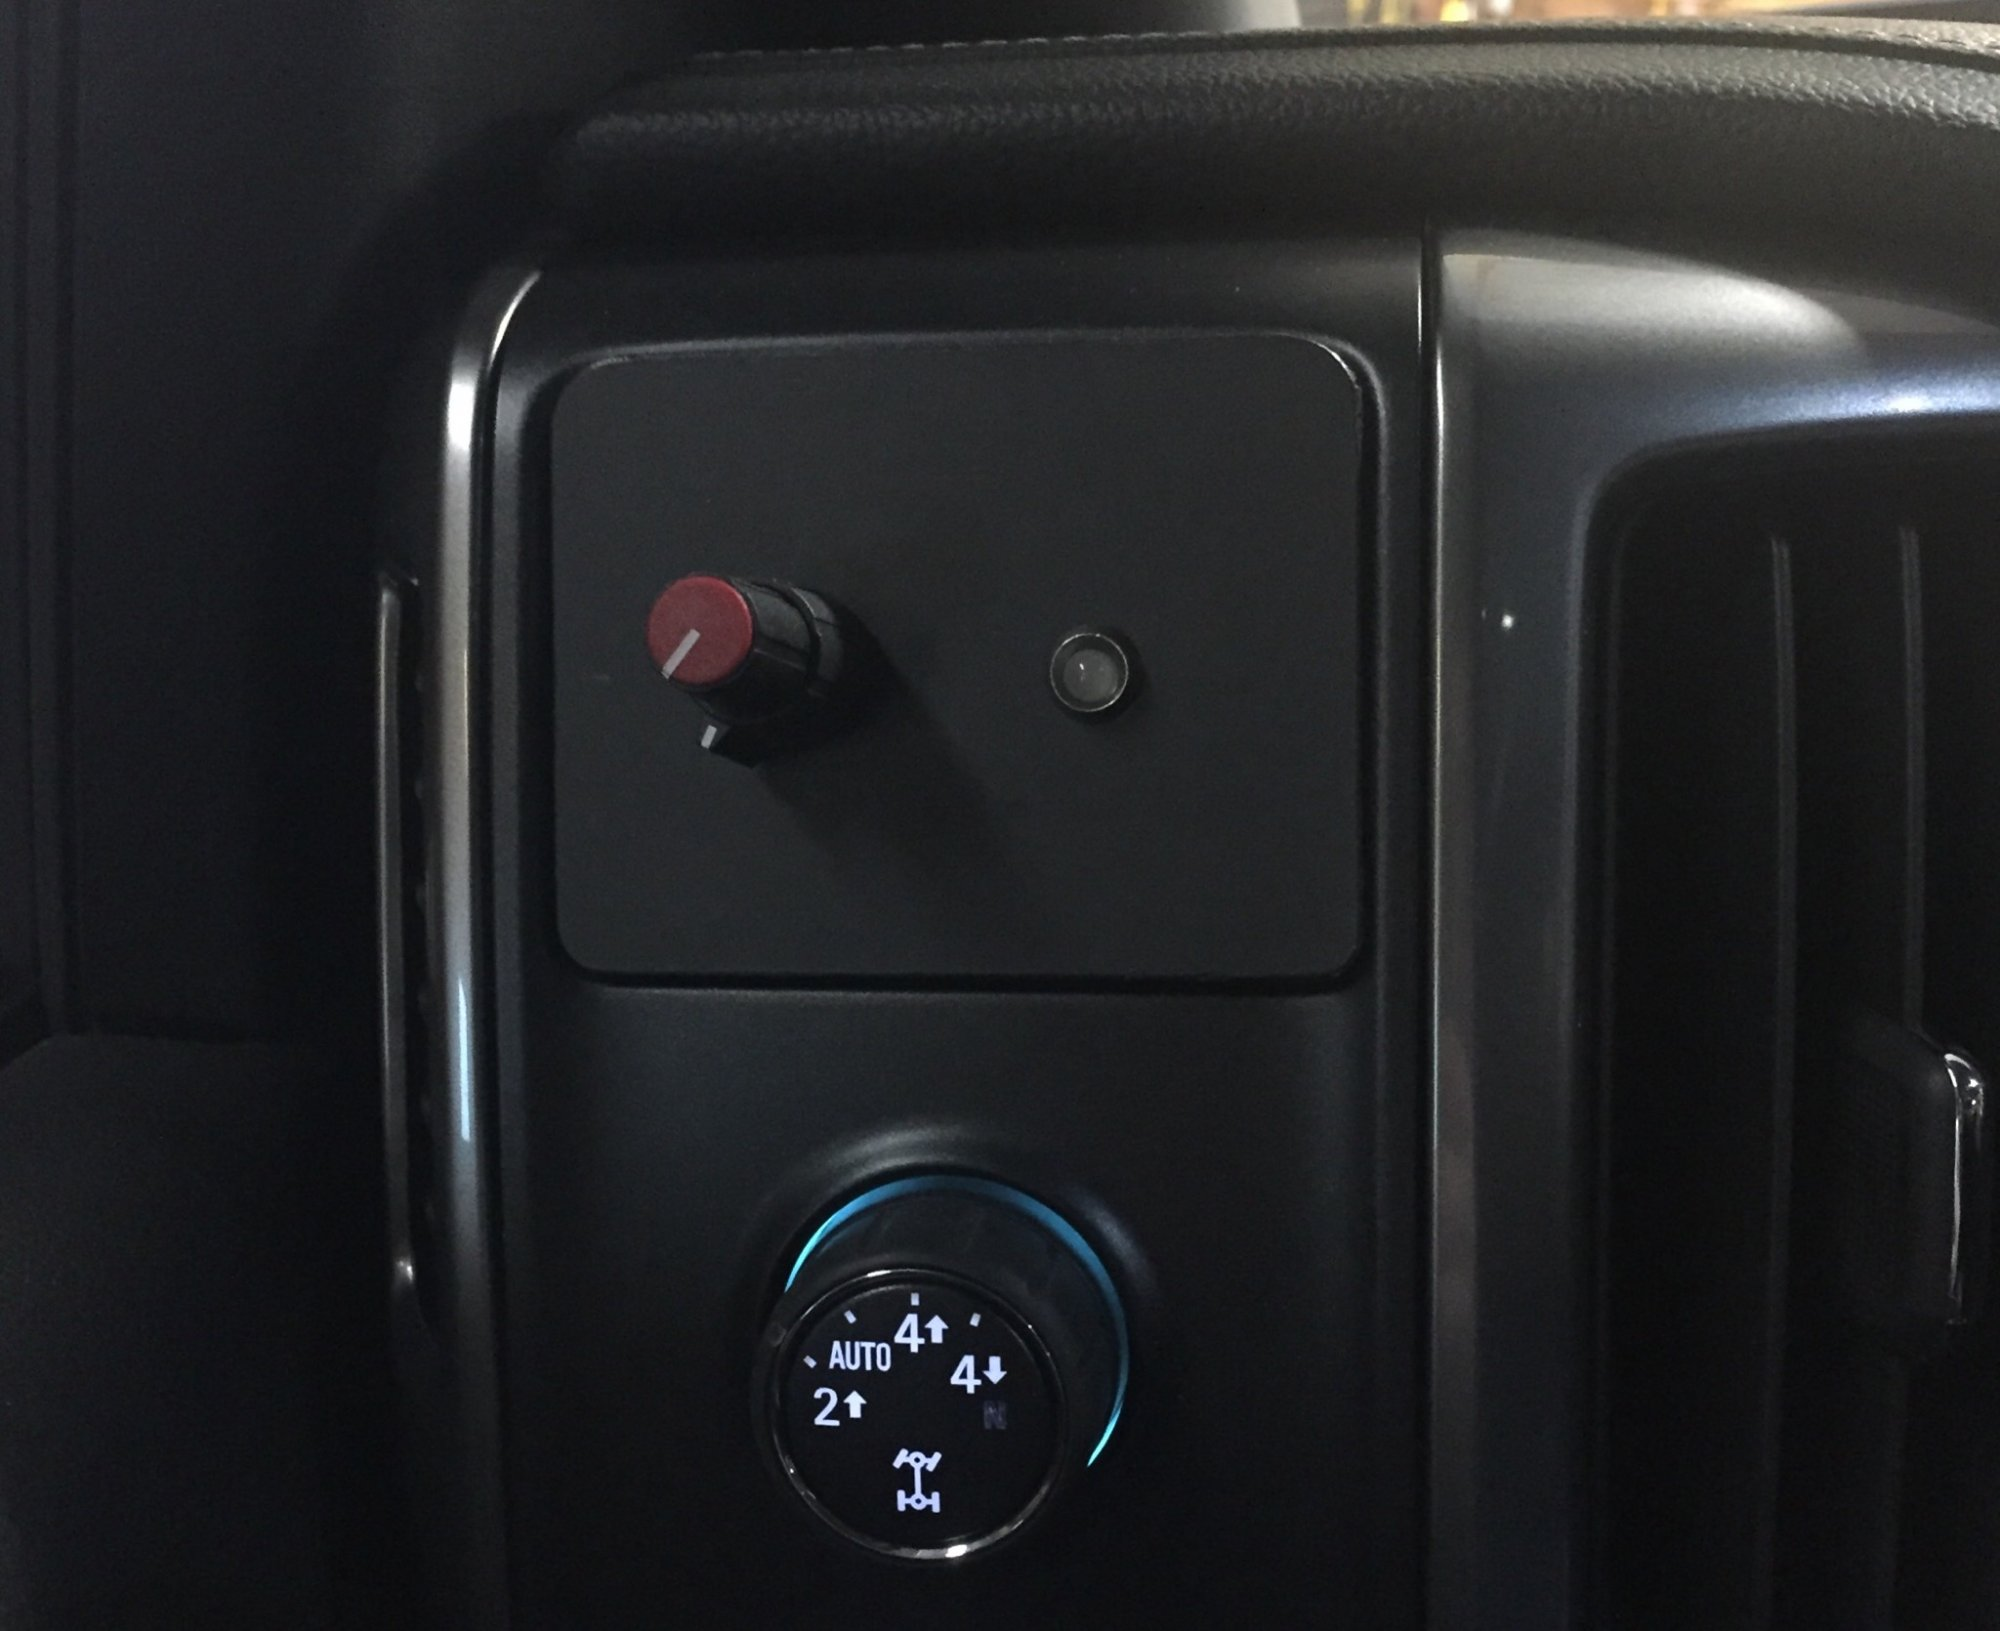 2015 Silverado Oem Trailer Brake Controller 2014 2018 Chevy Gm Truck Wiring Harness Install Locations